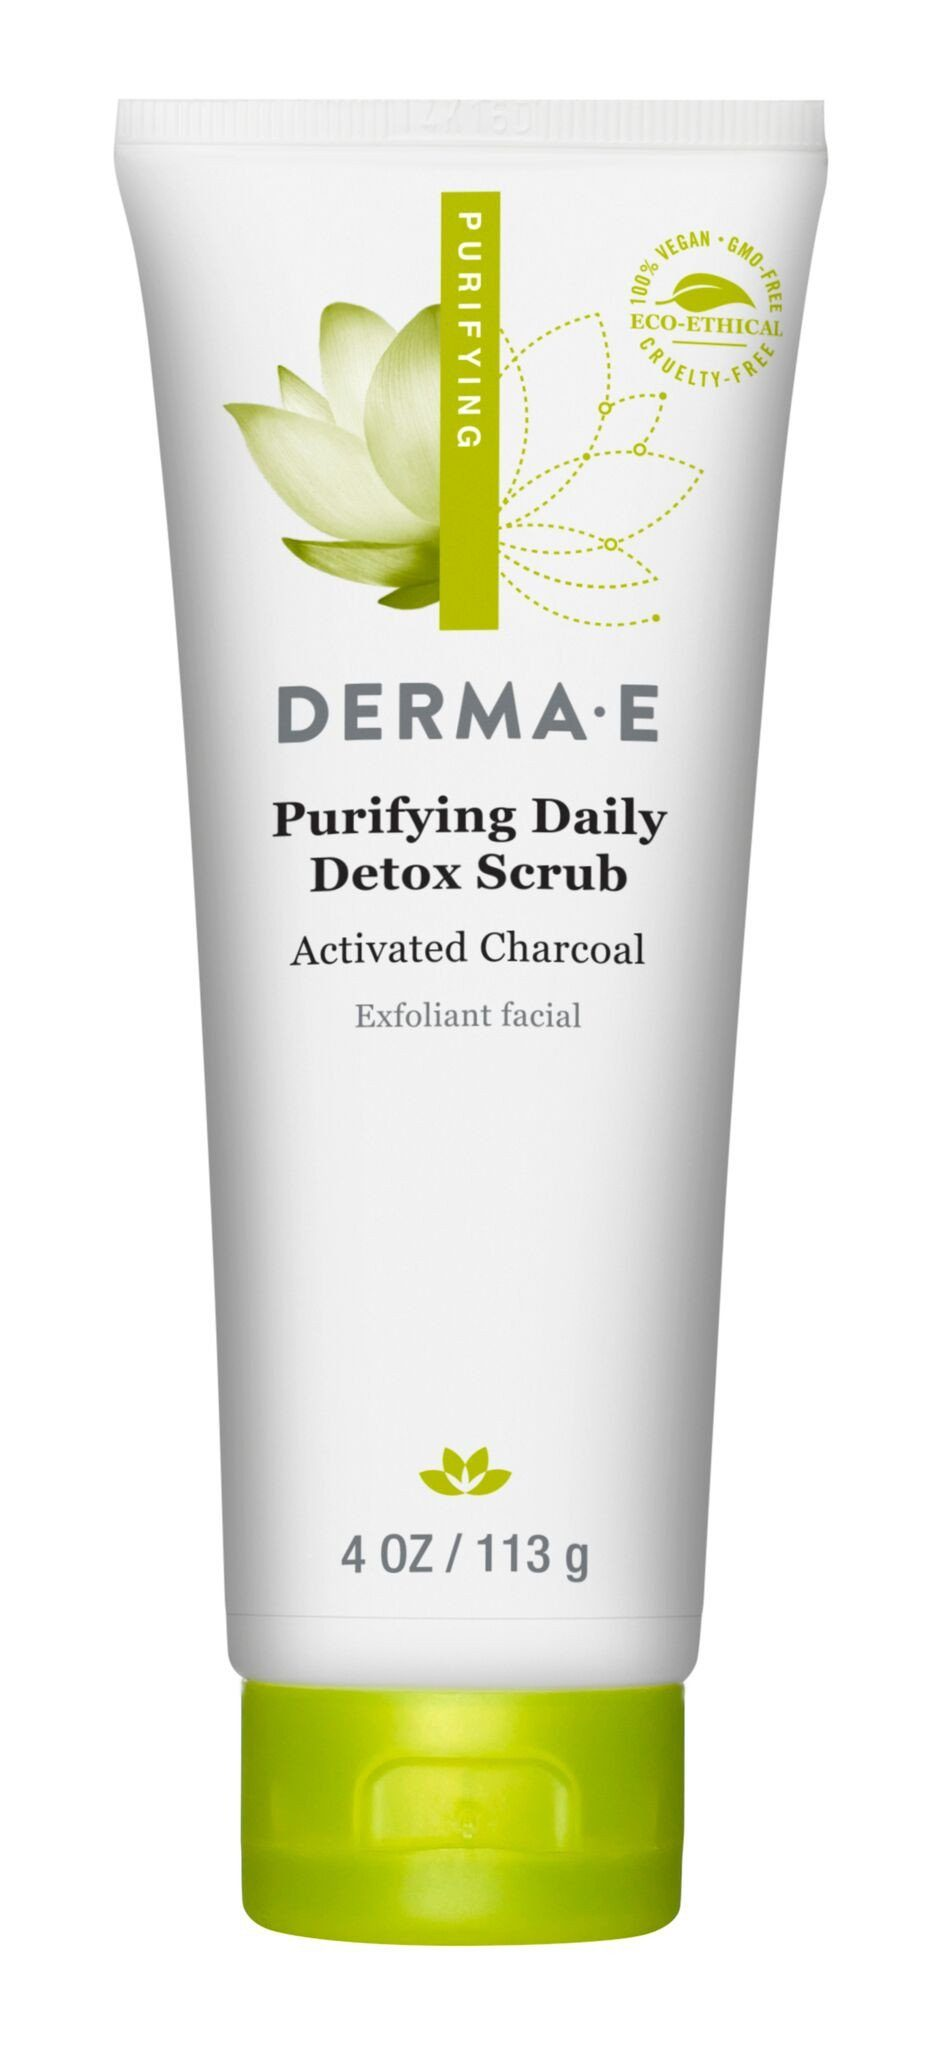 Personal Care - Derma E - Purifying Daily Detox Scrub, 113g